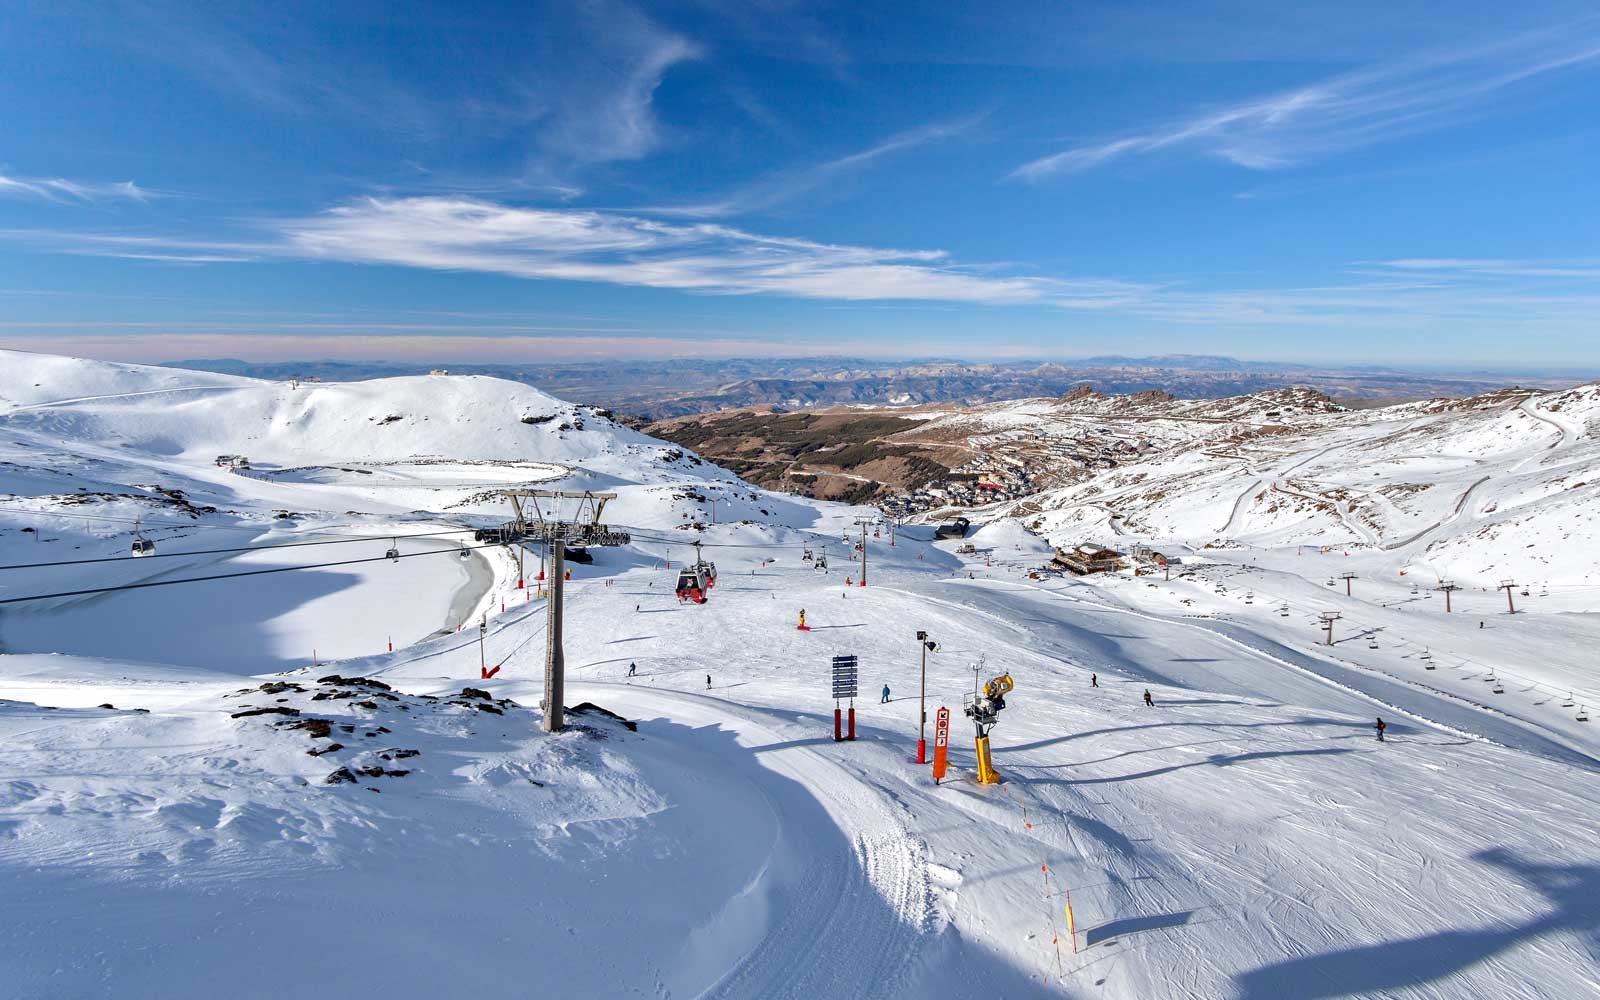 Mountain skiing - Pradollano, Sierra Nevada, Andalusia, Spain